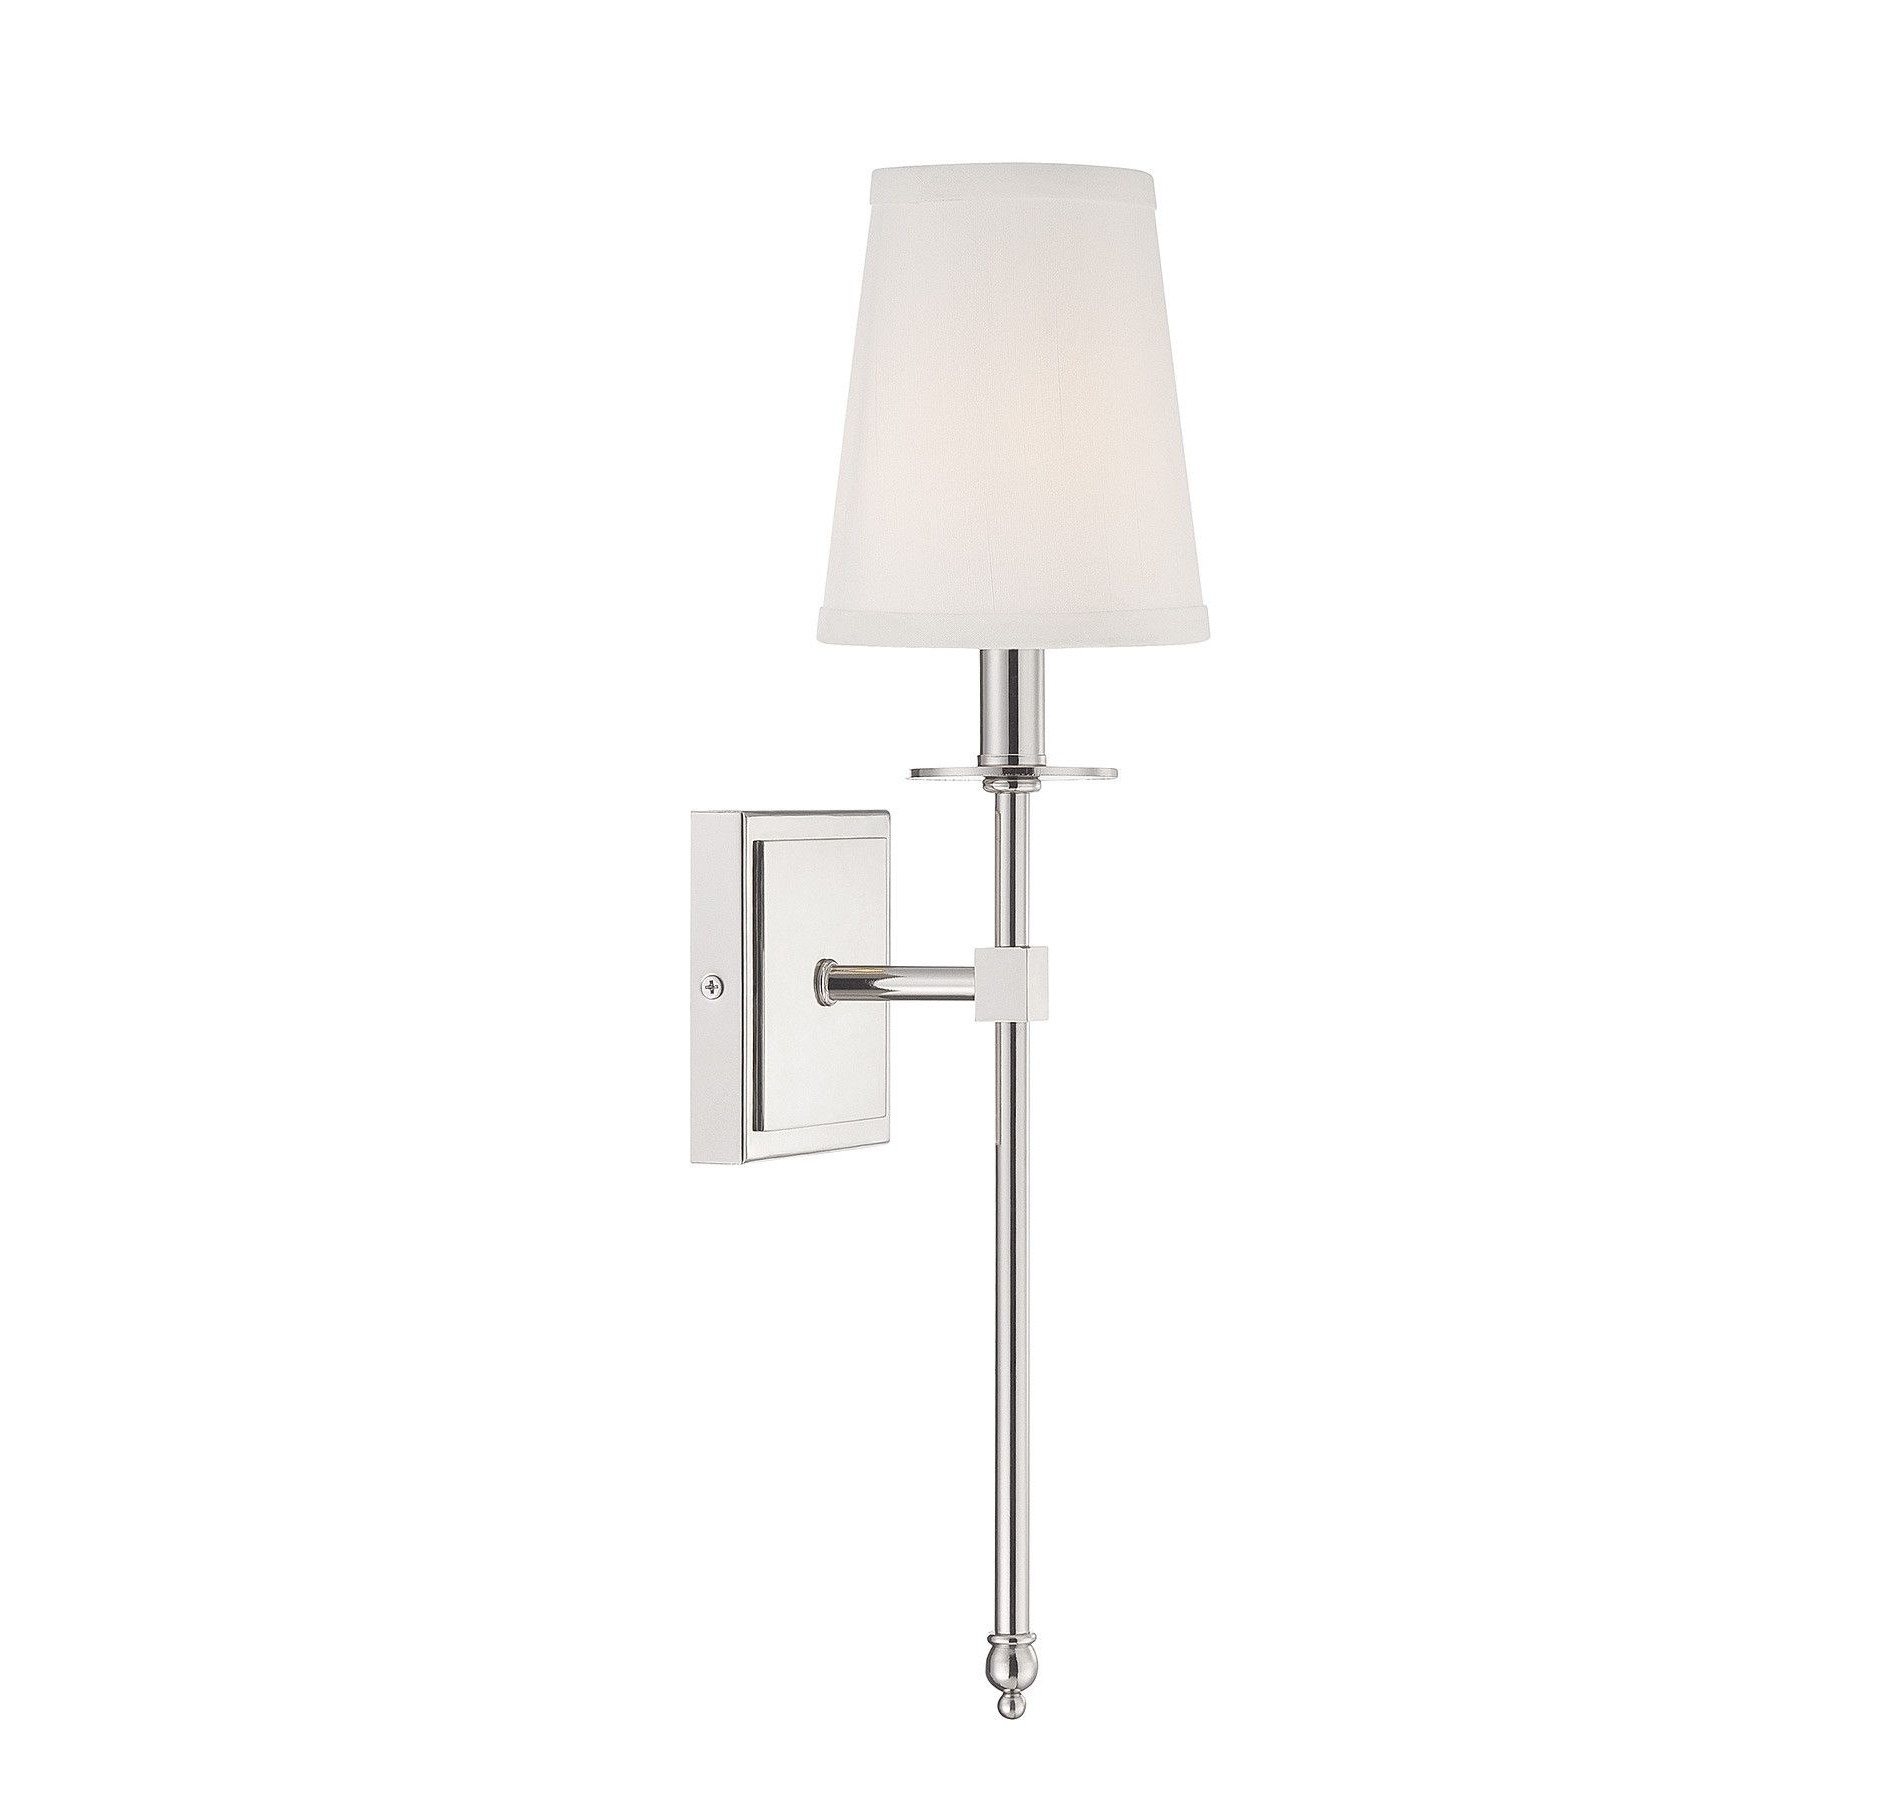 2019 1 Light Monroe Wall Sconce In Polished Nickel With Soft Fabric White Throughout Nickel Polished Outdoor Wall Lighting (View 3 of 20)